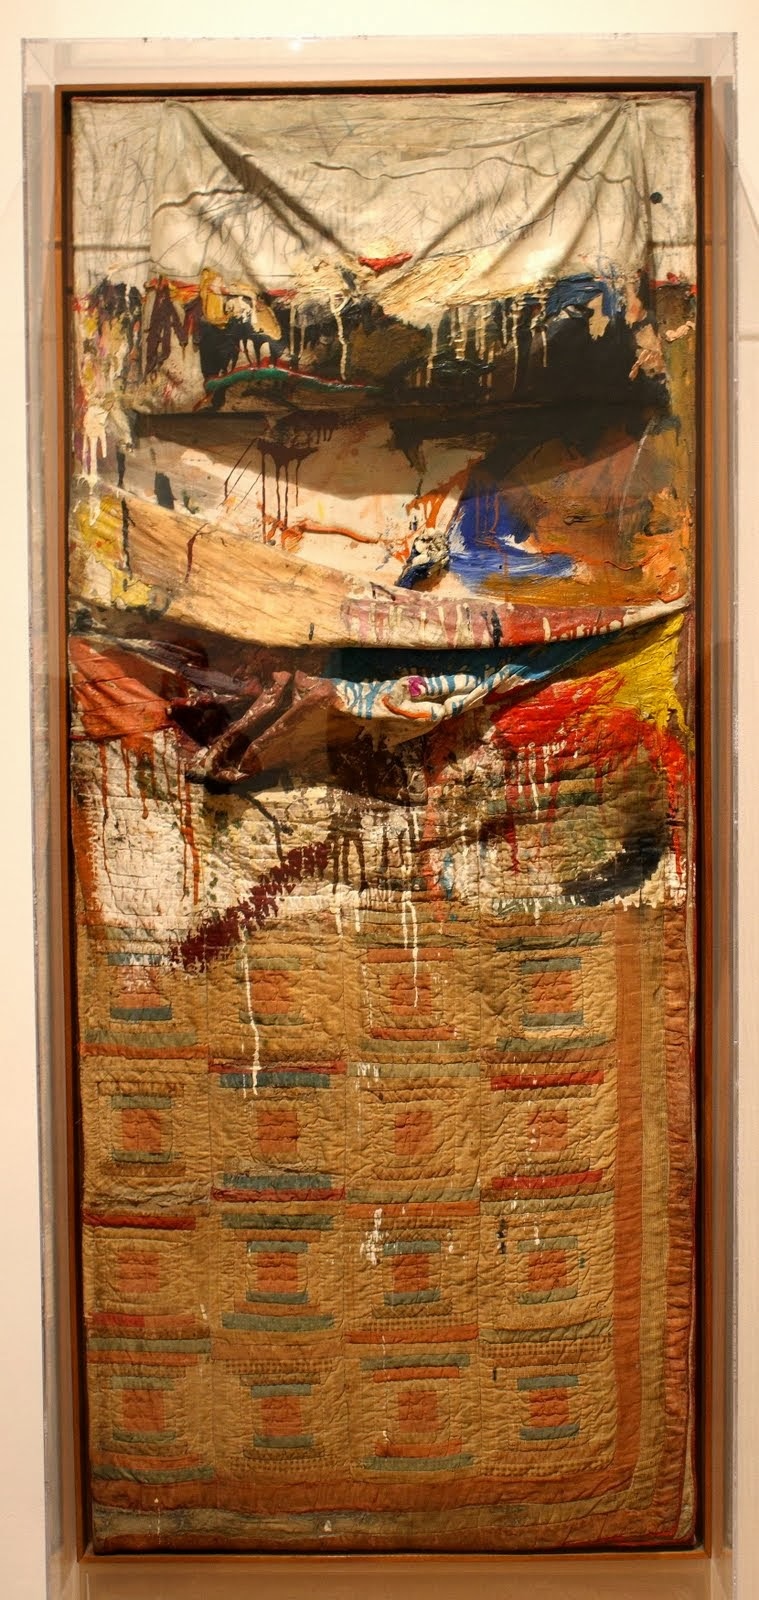 Muddy Colors: Artist of the Month: Rauschenberg